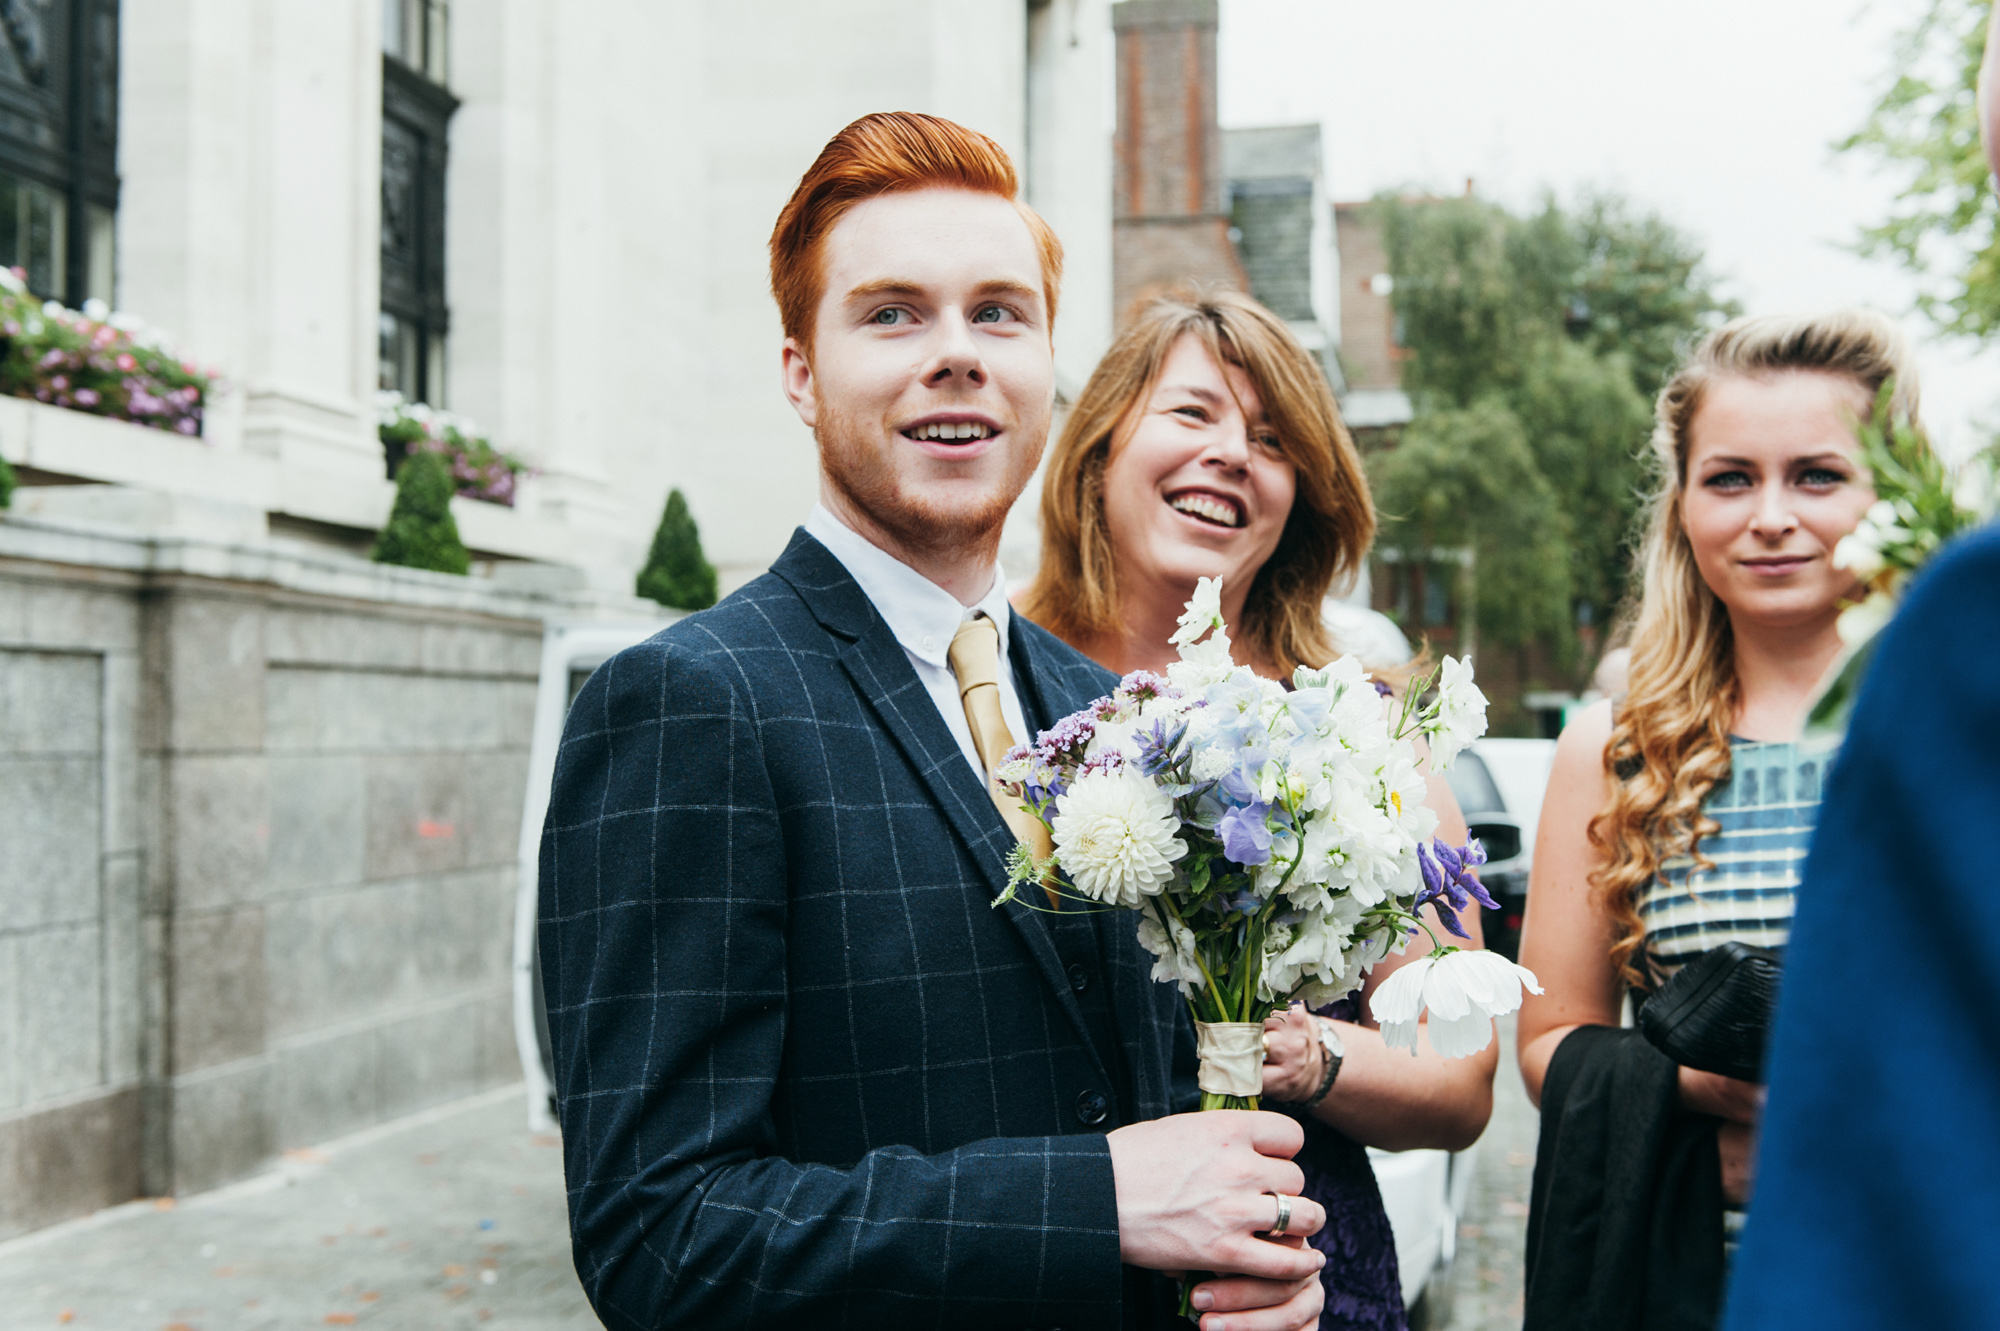 Smiling wedding guest holding bouquet - gay wedding The Roost Dalston wedding - quirky London wedding photographer © Babb Photo